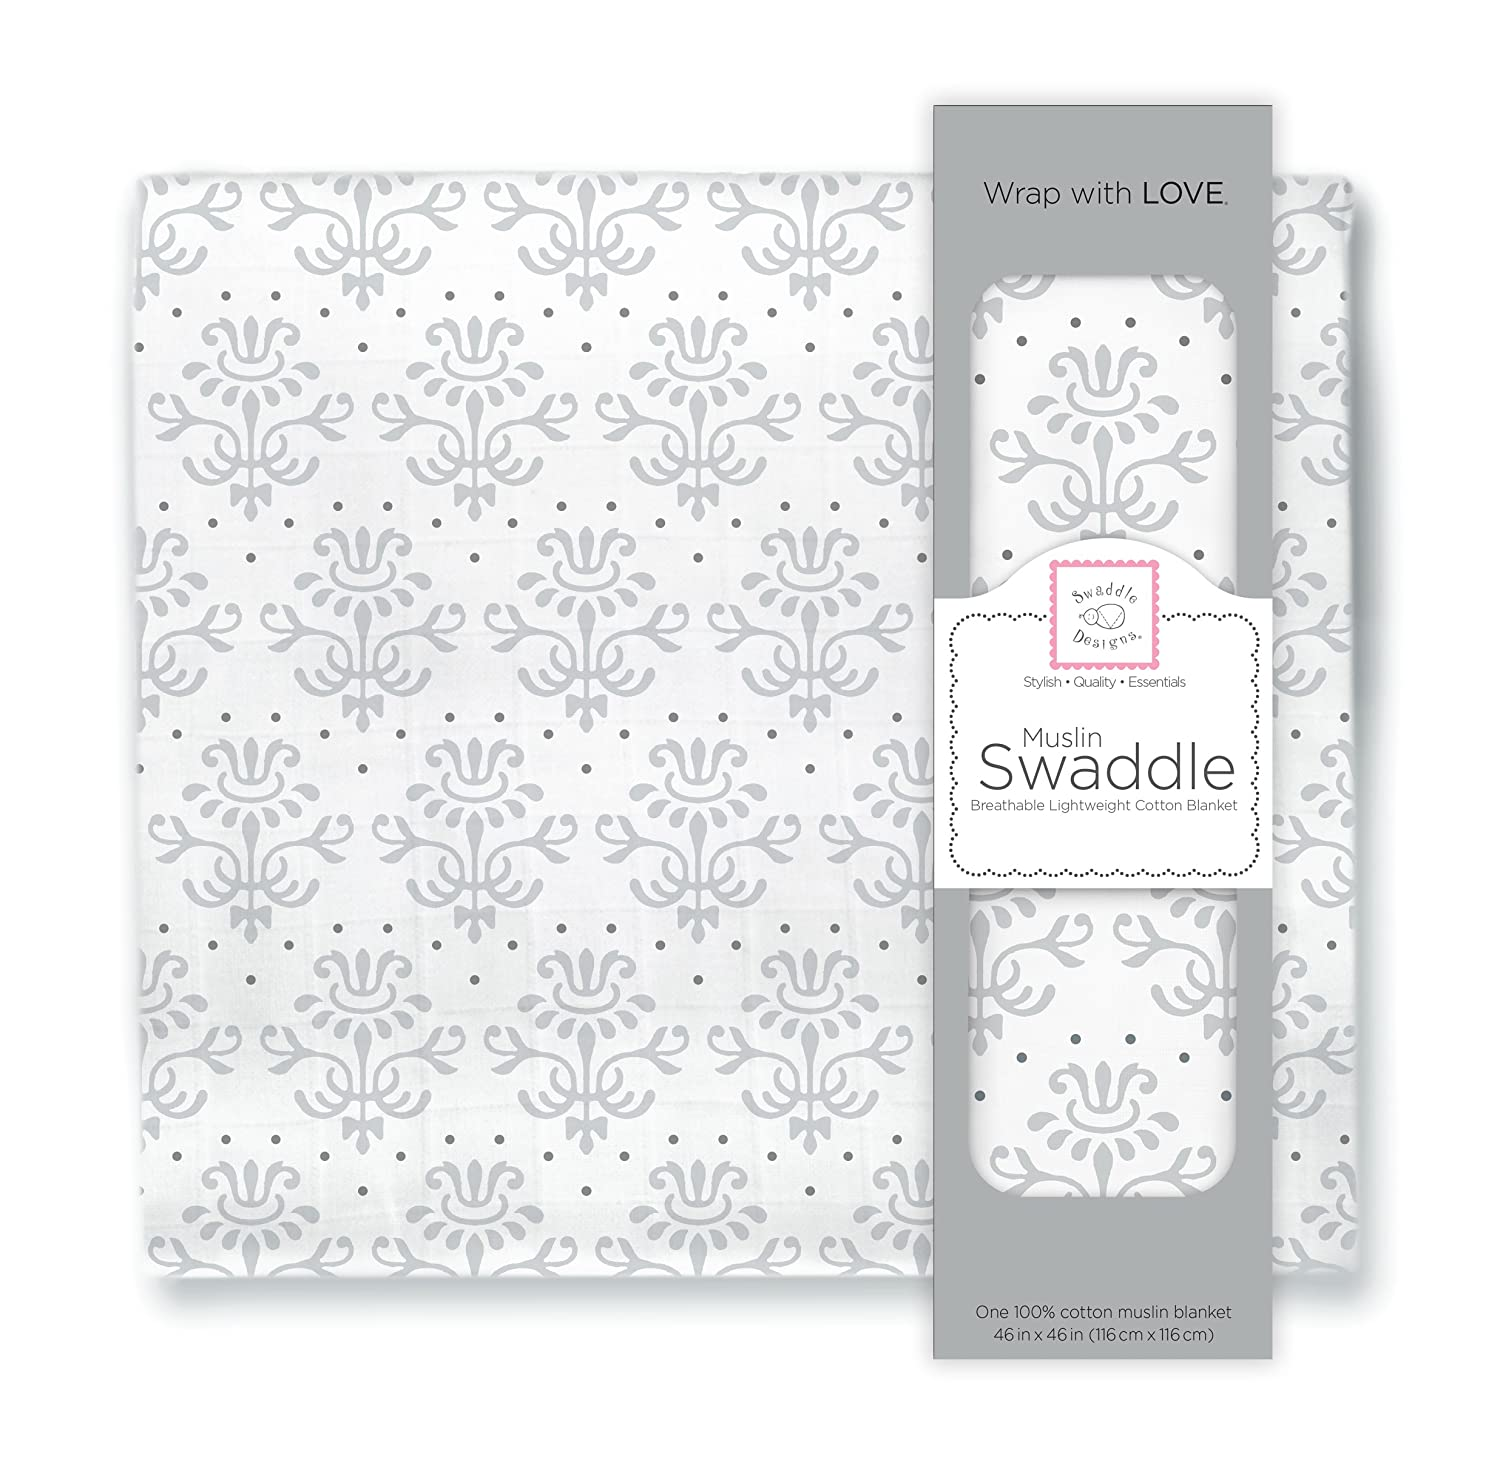 SwaddleDesigns X-Large Cotton Muslin Swaddle Blanket, Sterling Lillie SDM-158BK